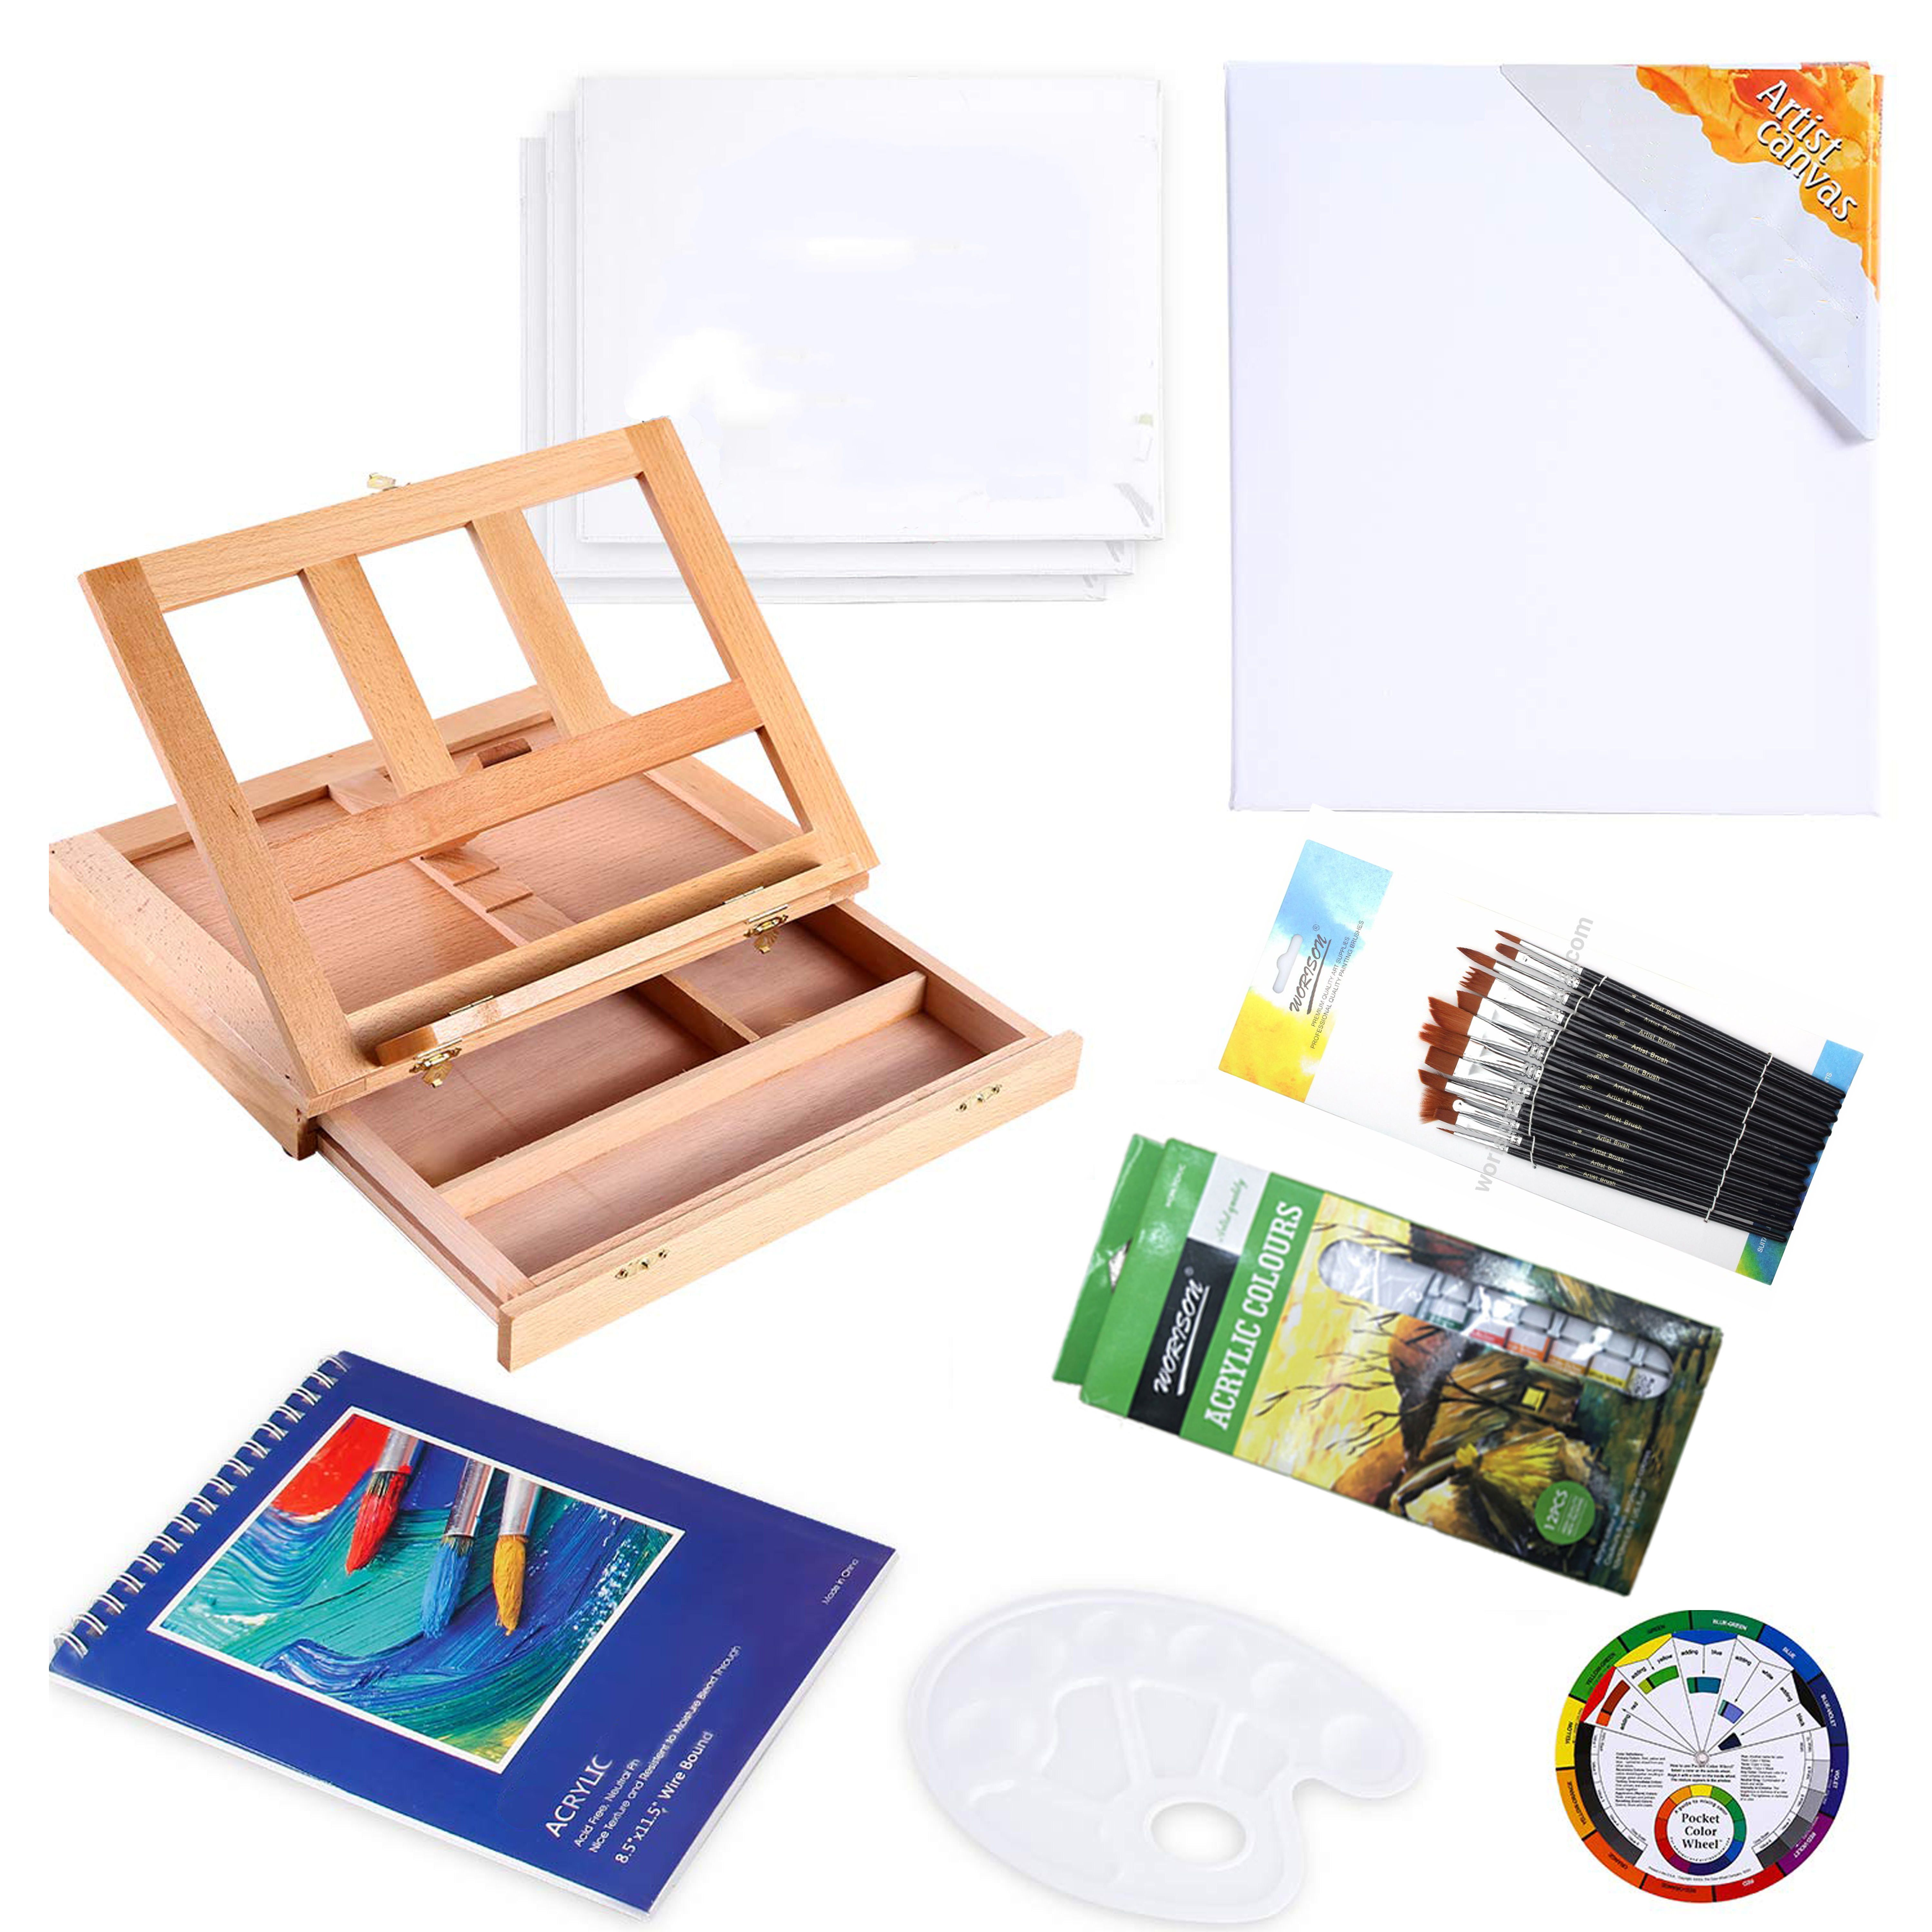 32Pcs Acrylic Artist Painting Set With Wood Table Top Easel Box Brushes Acrylic Paint And Acrylic Painting Pads For Art Supplies